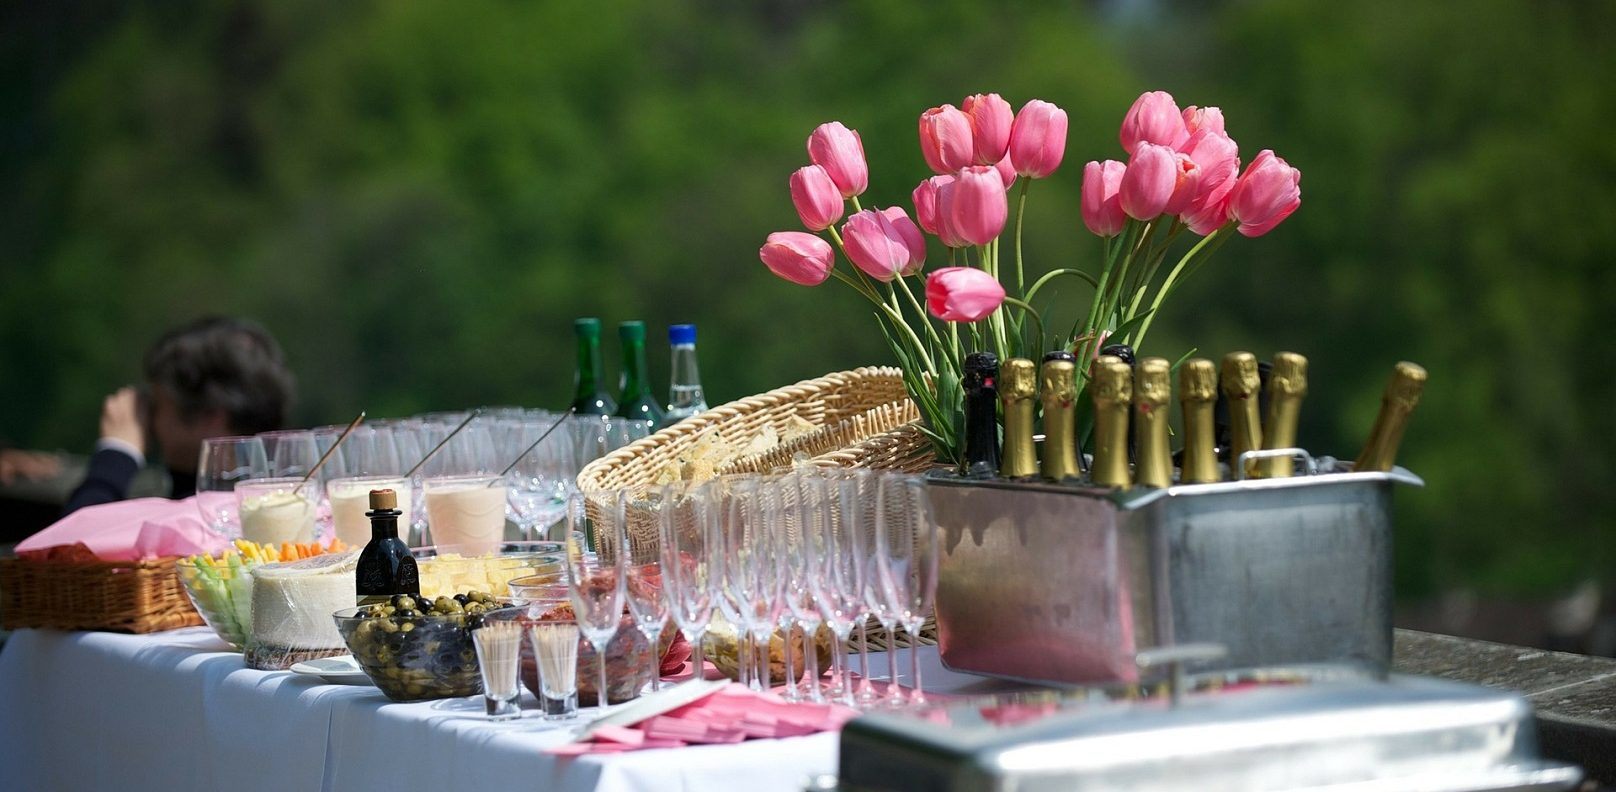 Wedding table with flowers, champagne, and glasses